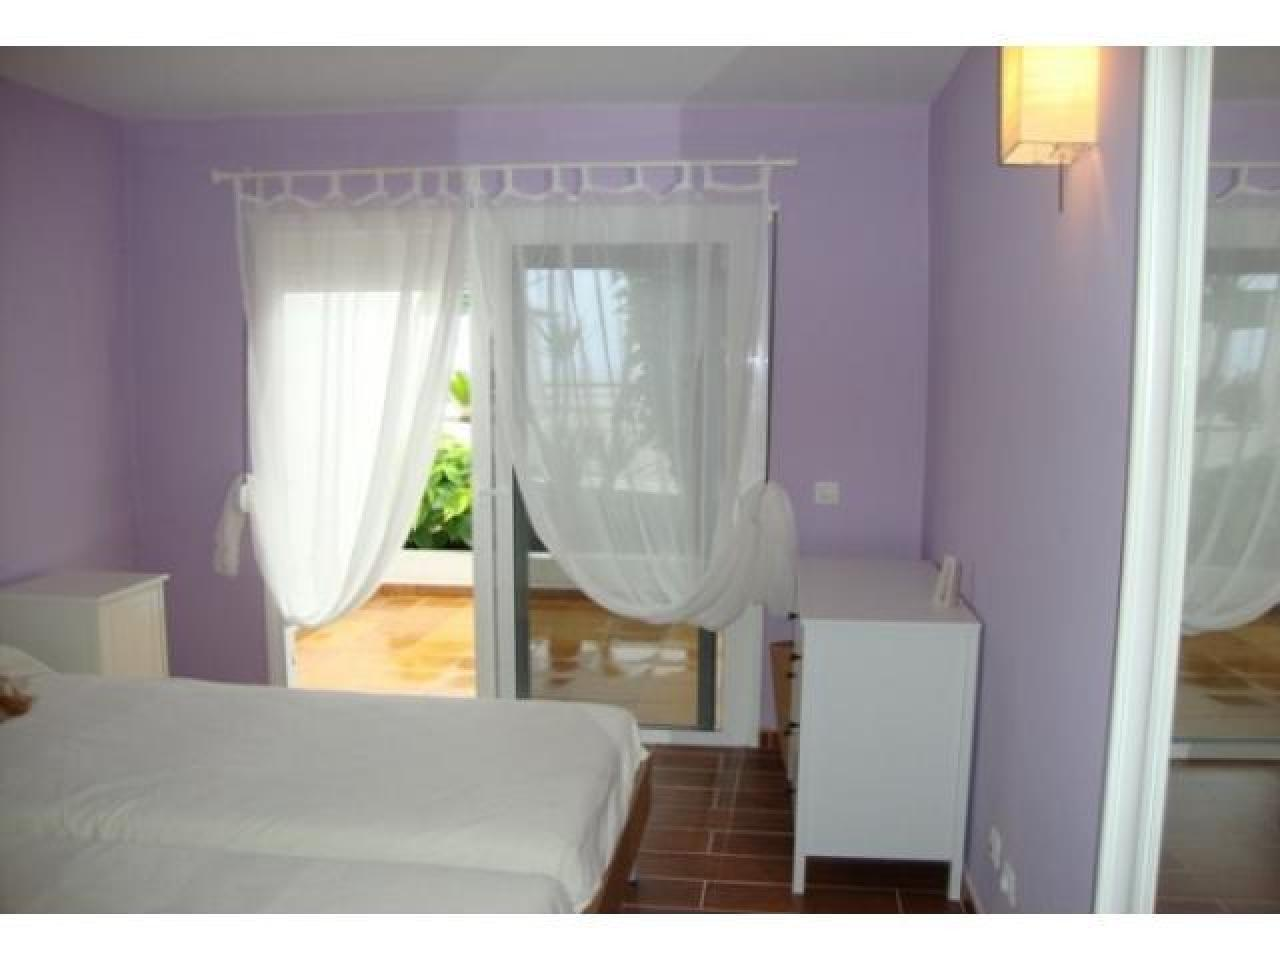 Real estate in Tenerife for sale » #274 - 5